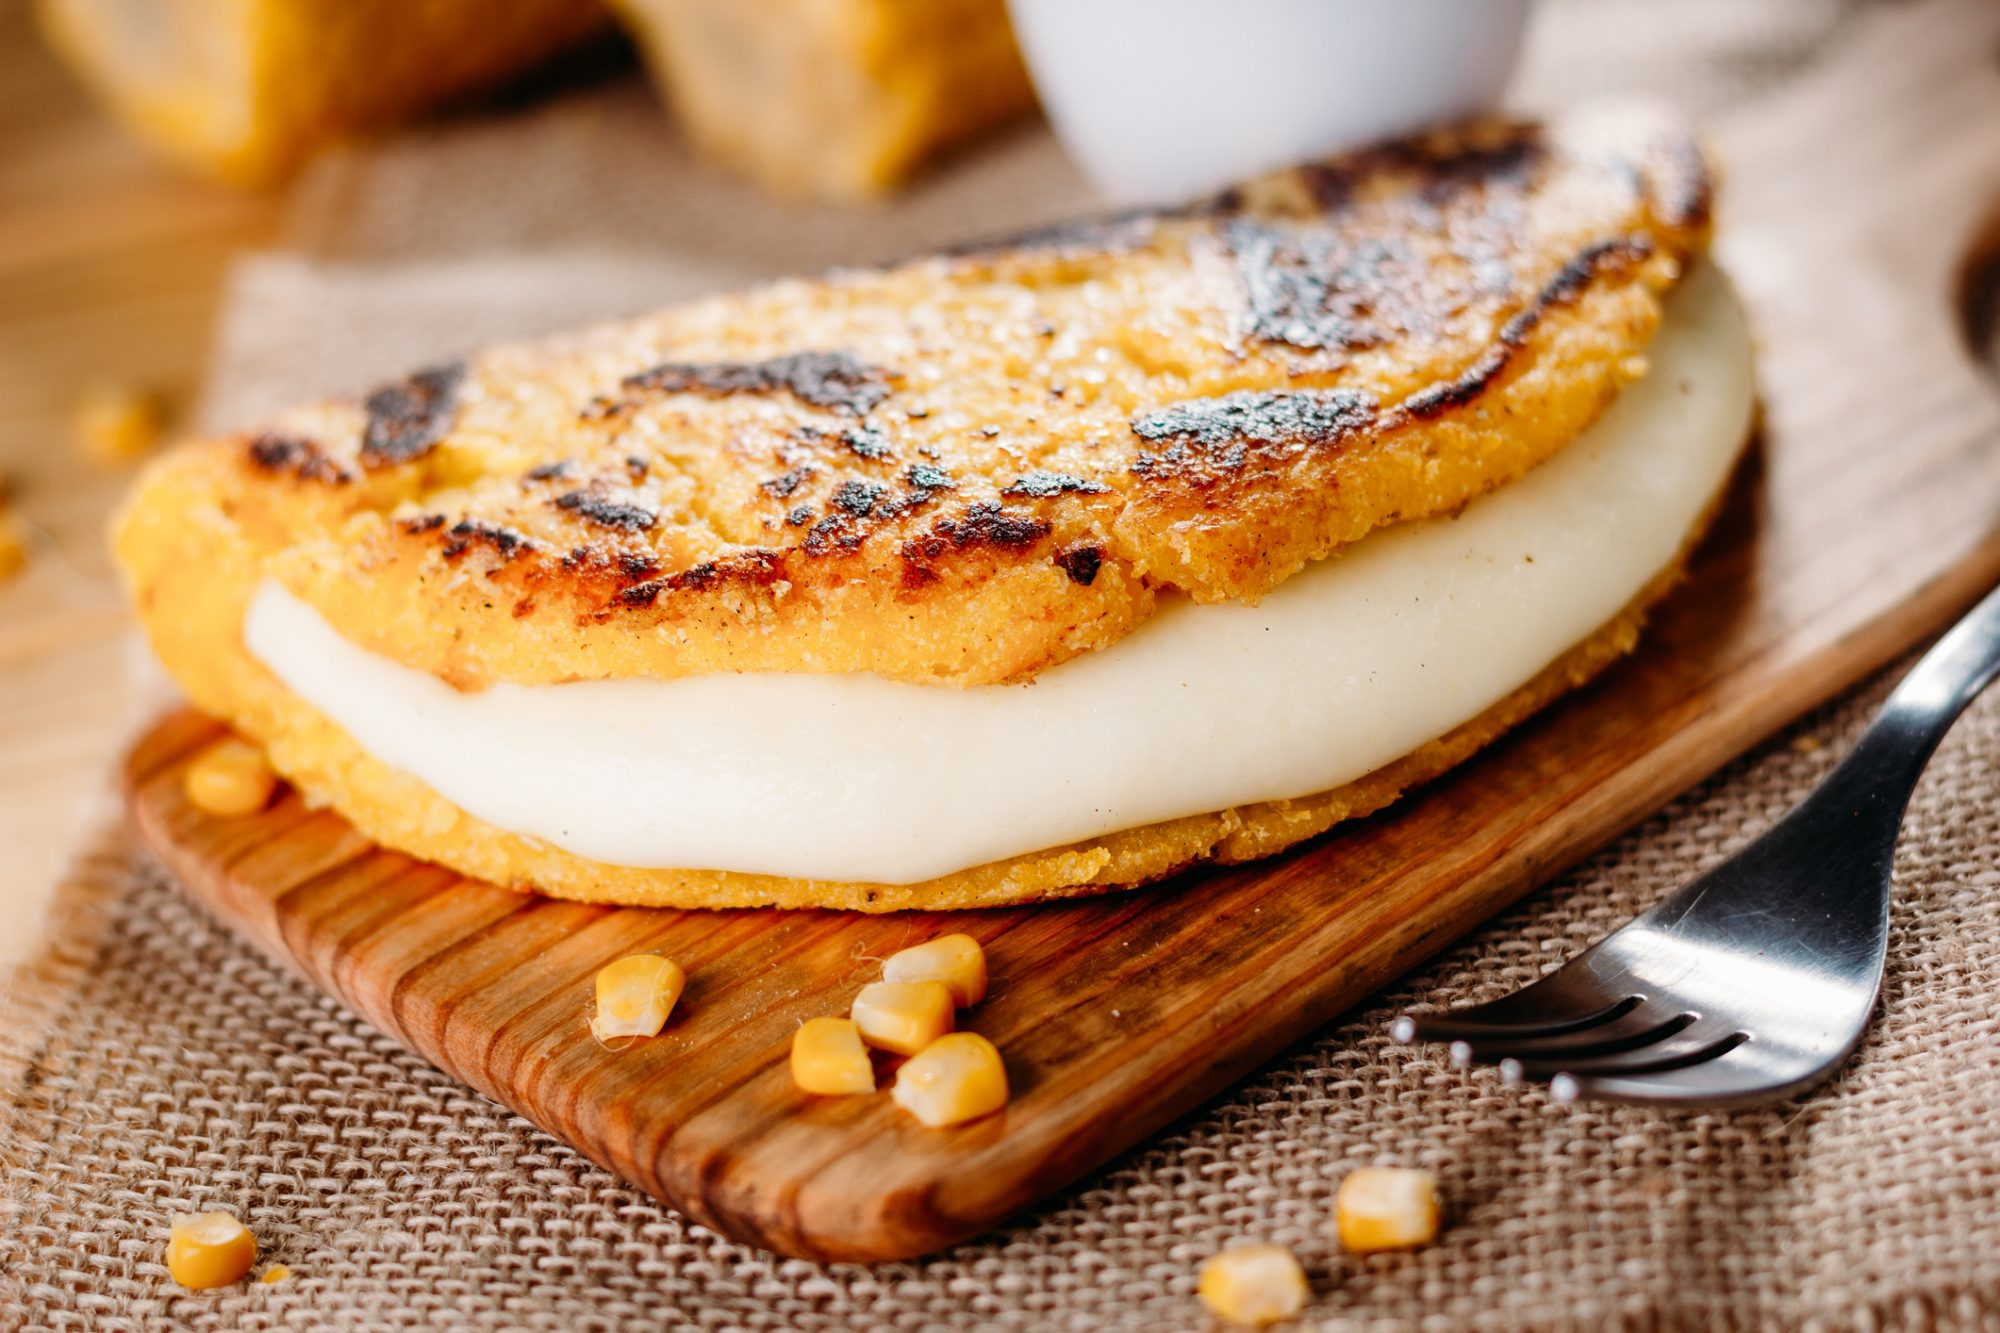 Why You Should Make Cachapas, Venezuelan Corn Pancakes Stuffed With Cheese